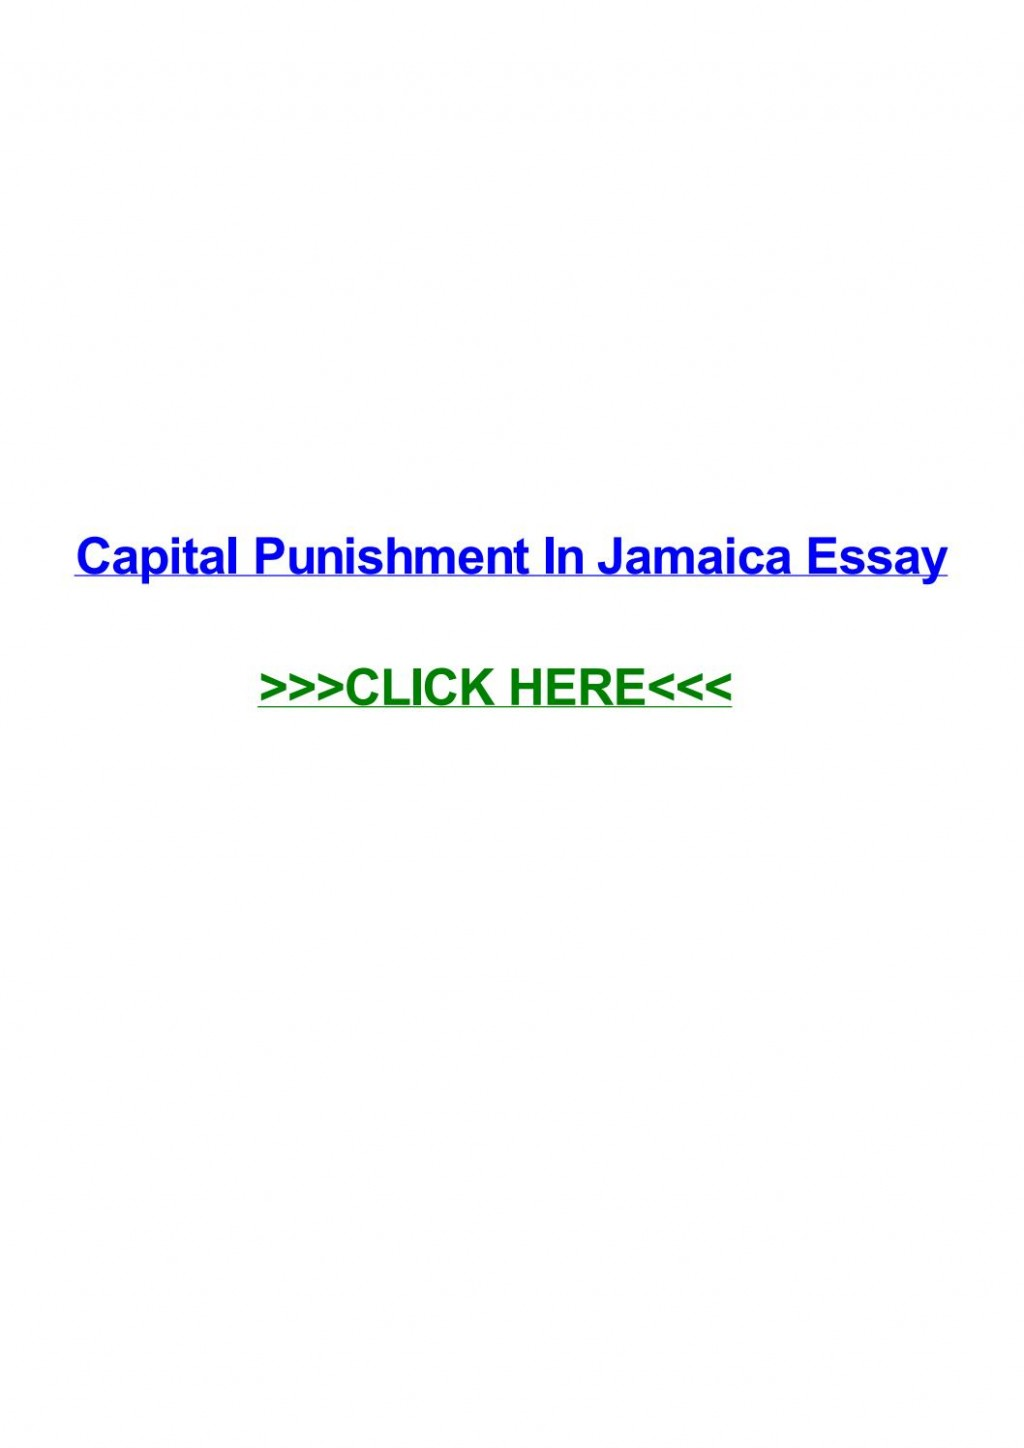 023 Page 1 Essay Capital Breathtaking Promo Codes Capitalism In The Usa 1900 To 1940 New Deal Reviews Large